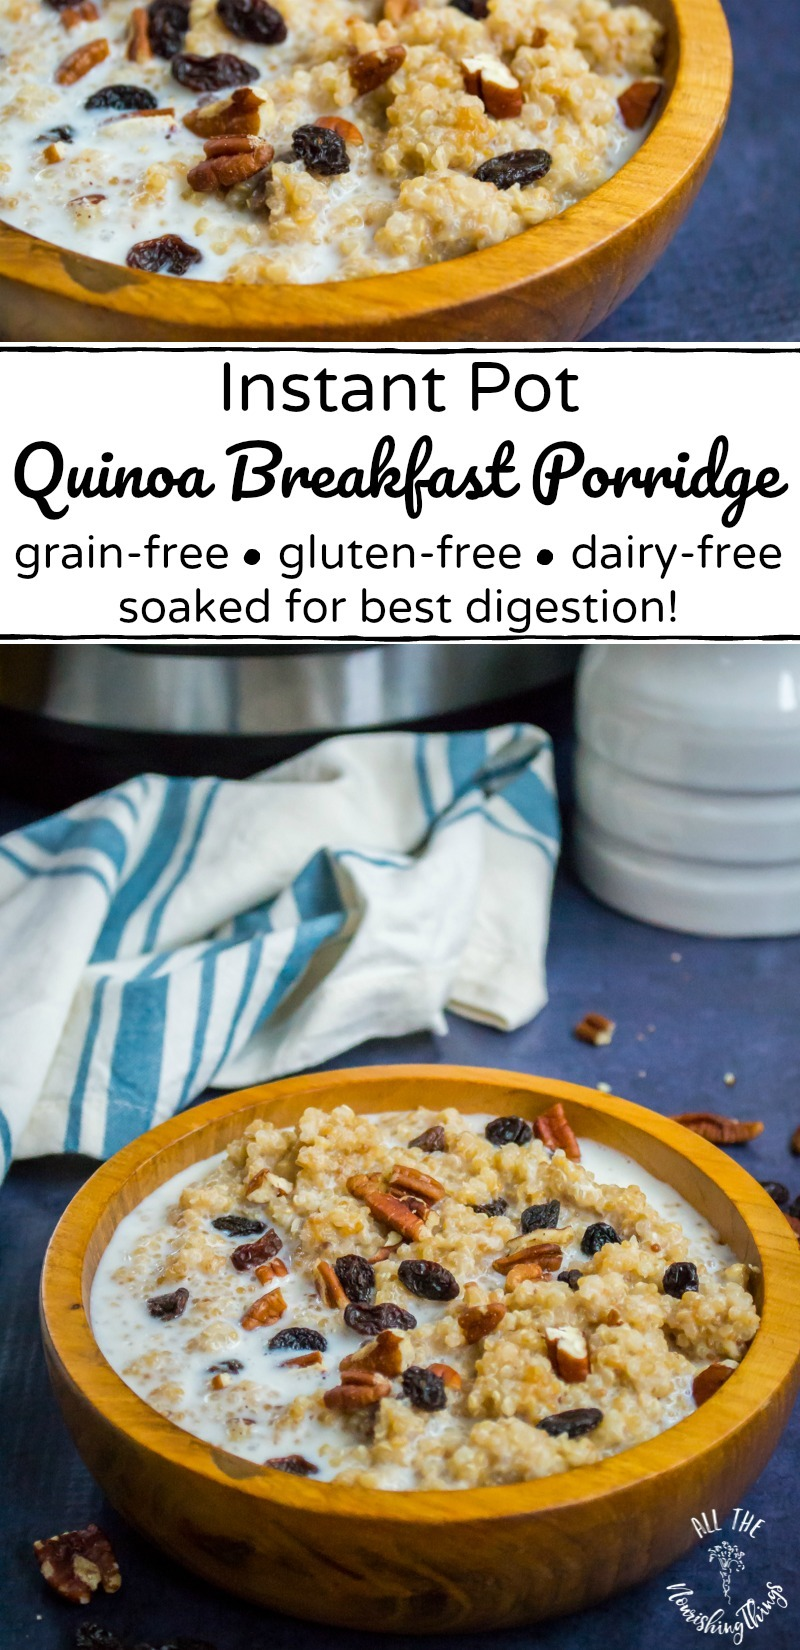 collage of 2 images of instant pot quinoa breakfast porridge with text overlay